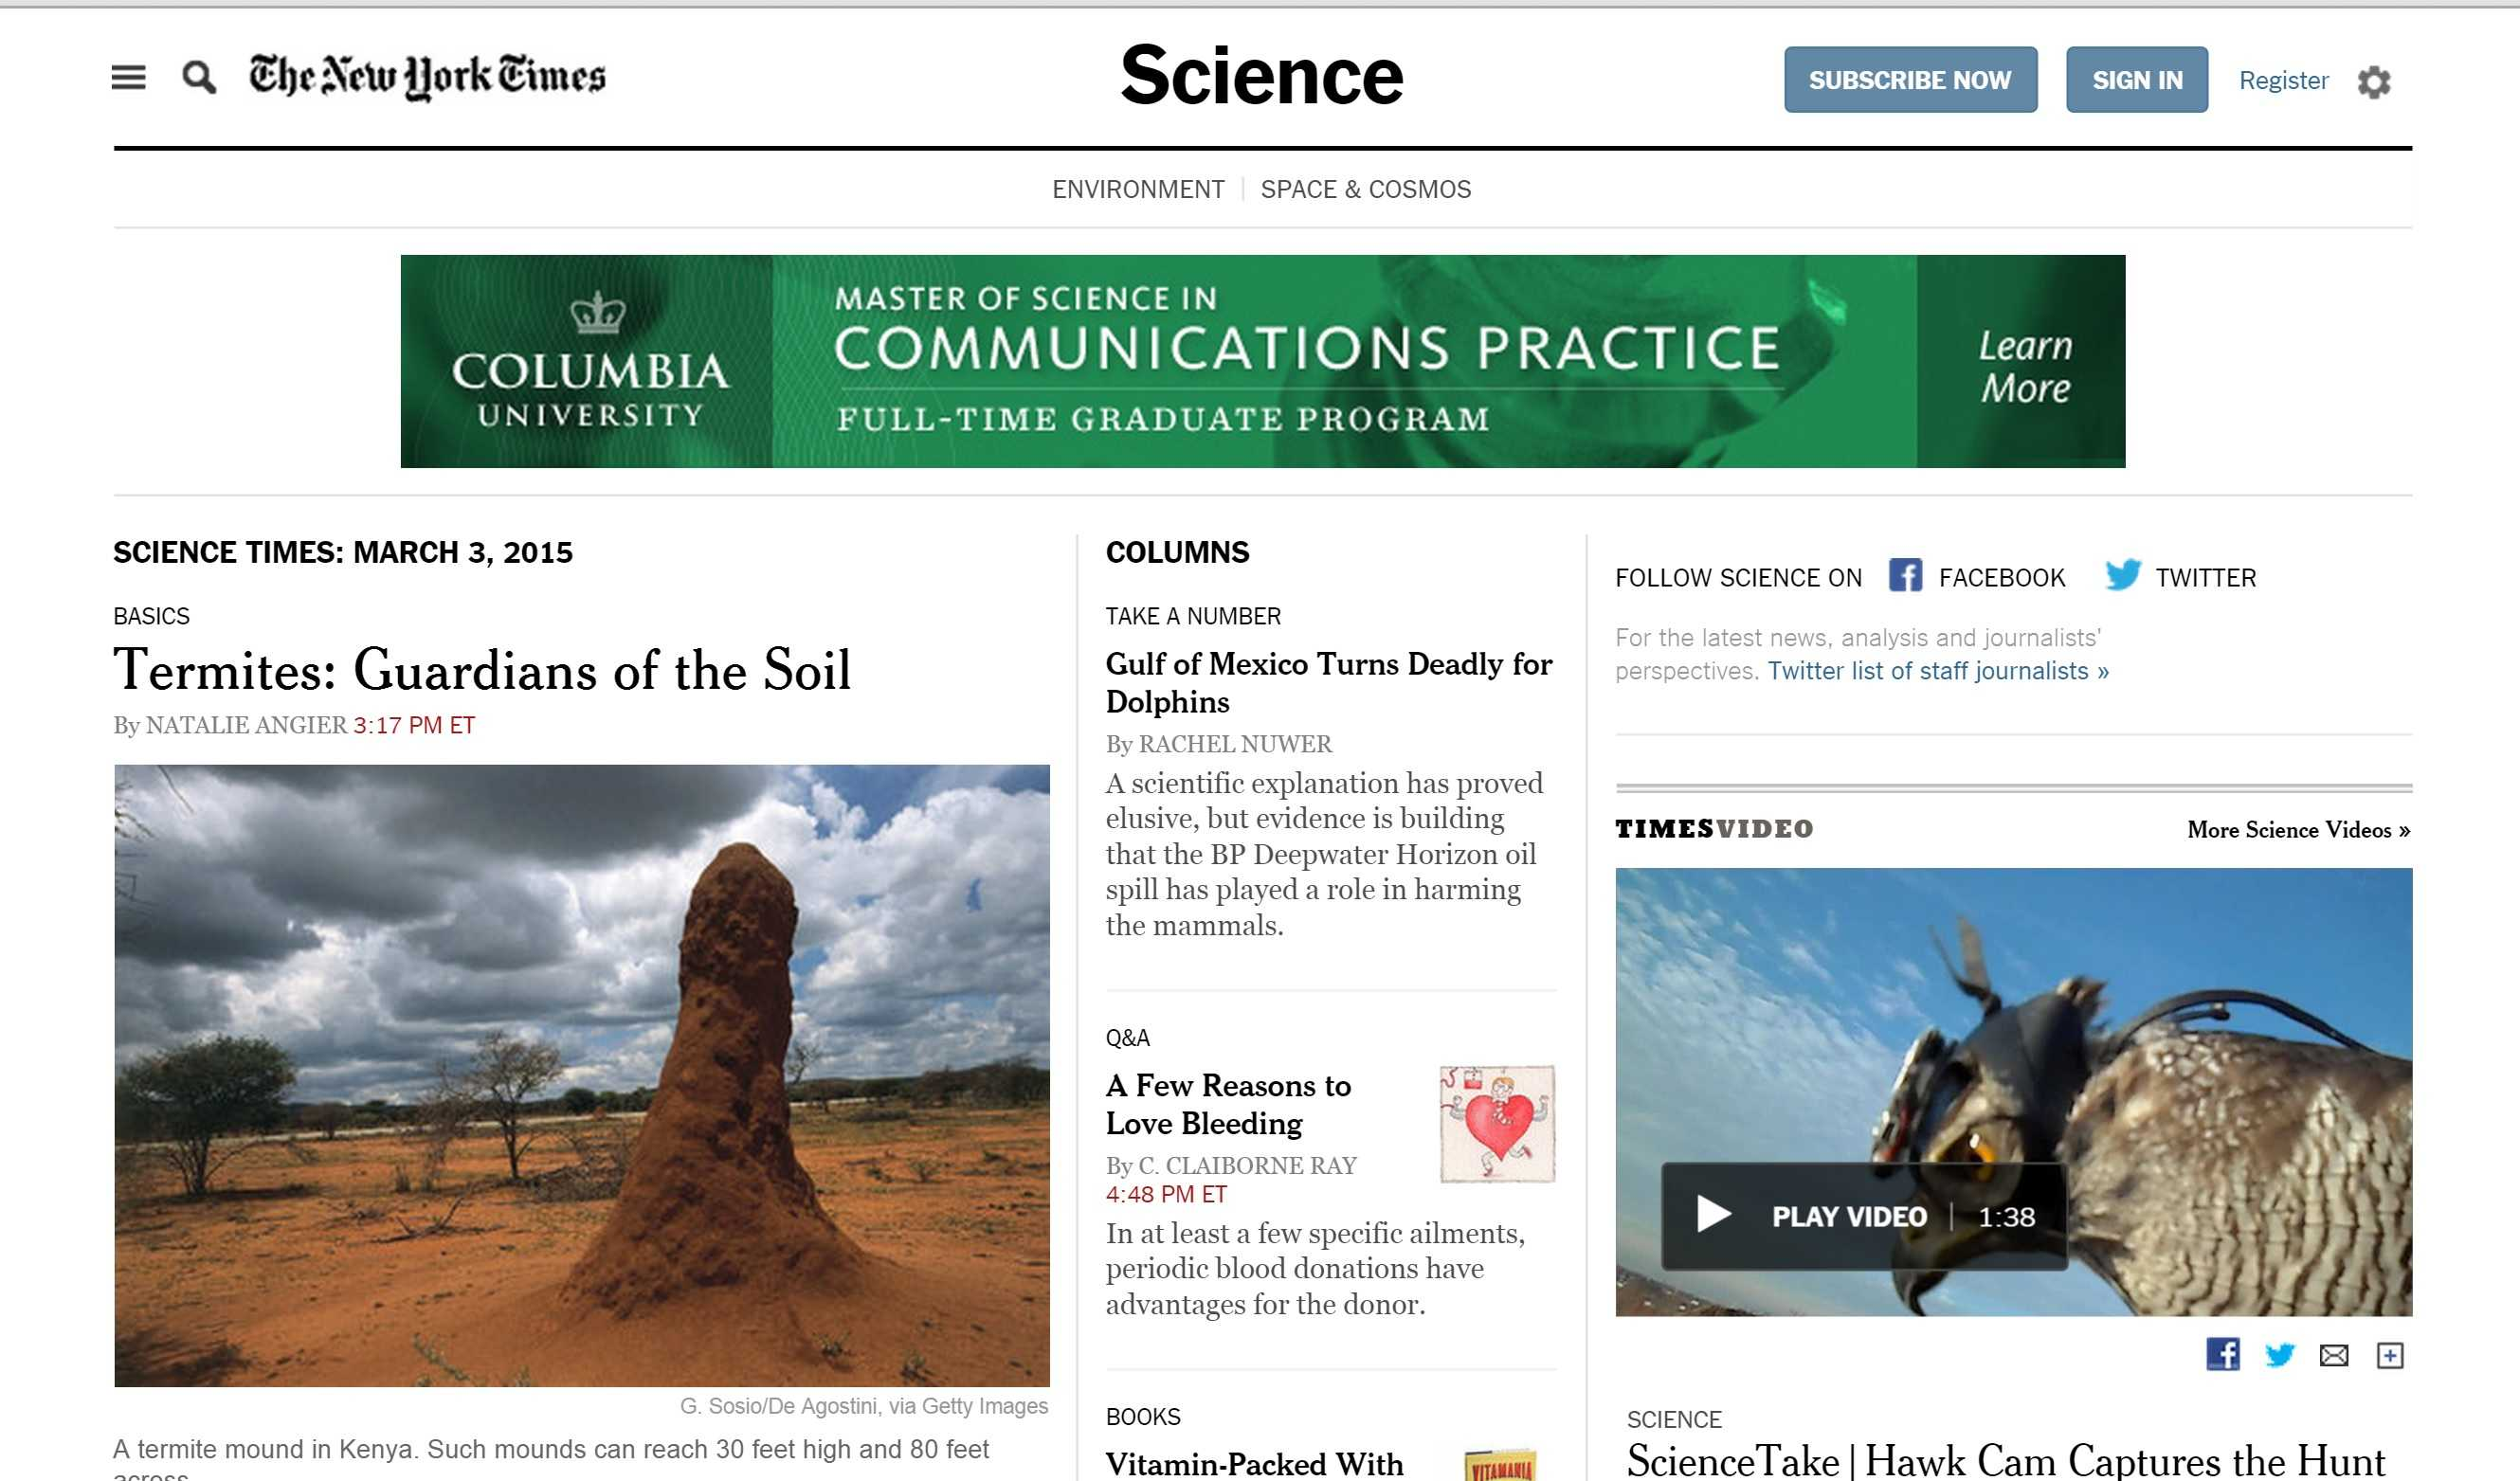 The New York Times' science page is just one example of the overlaps between journalism and STEM topics.